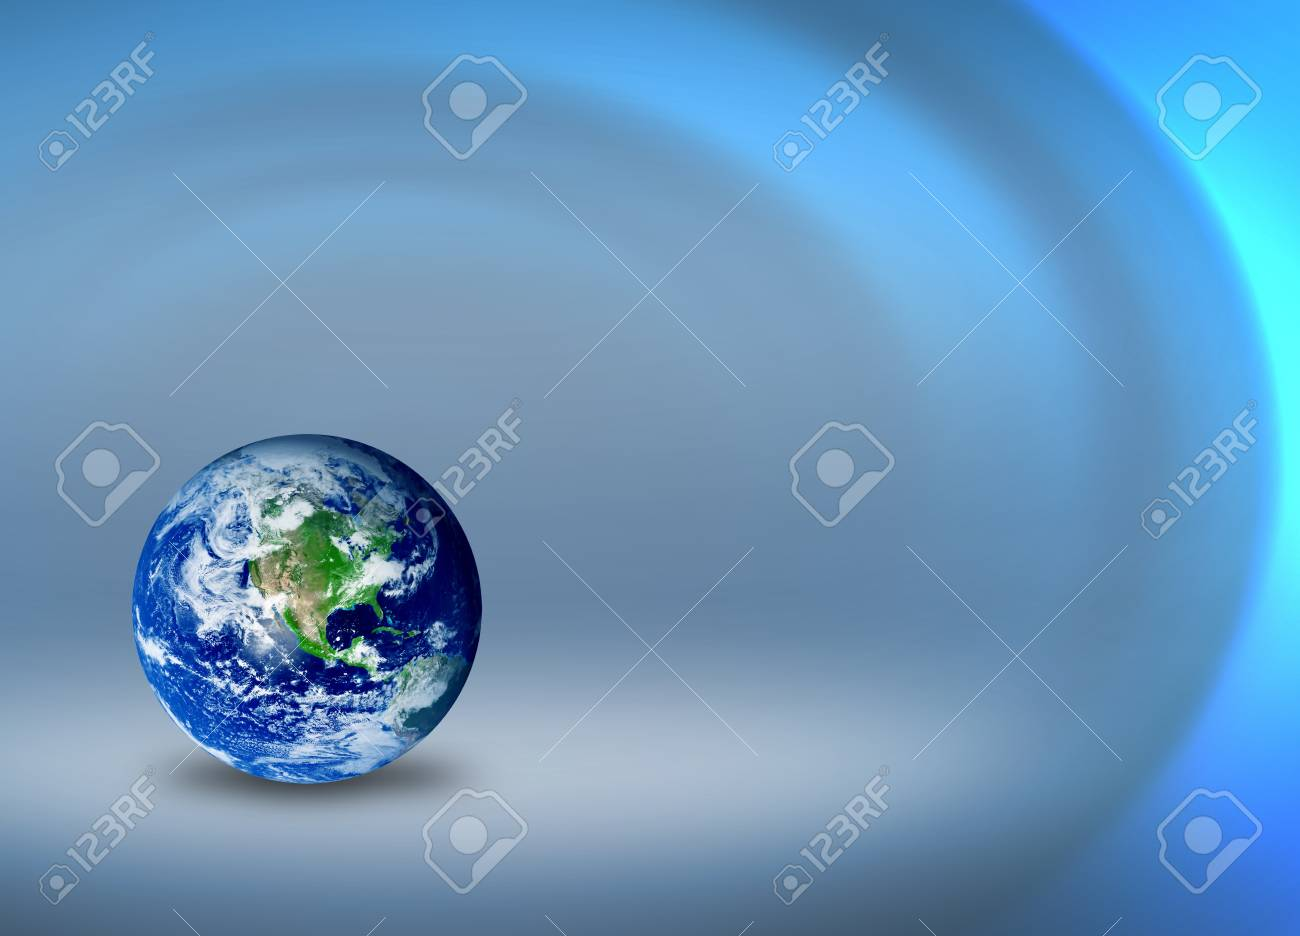 Model of planet earth over blue wave background Stock Photo - 9314816